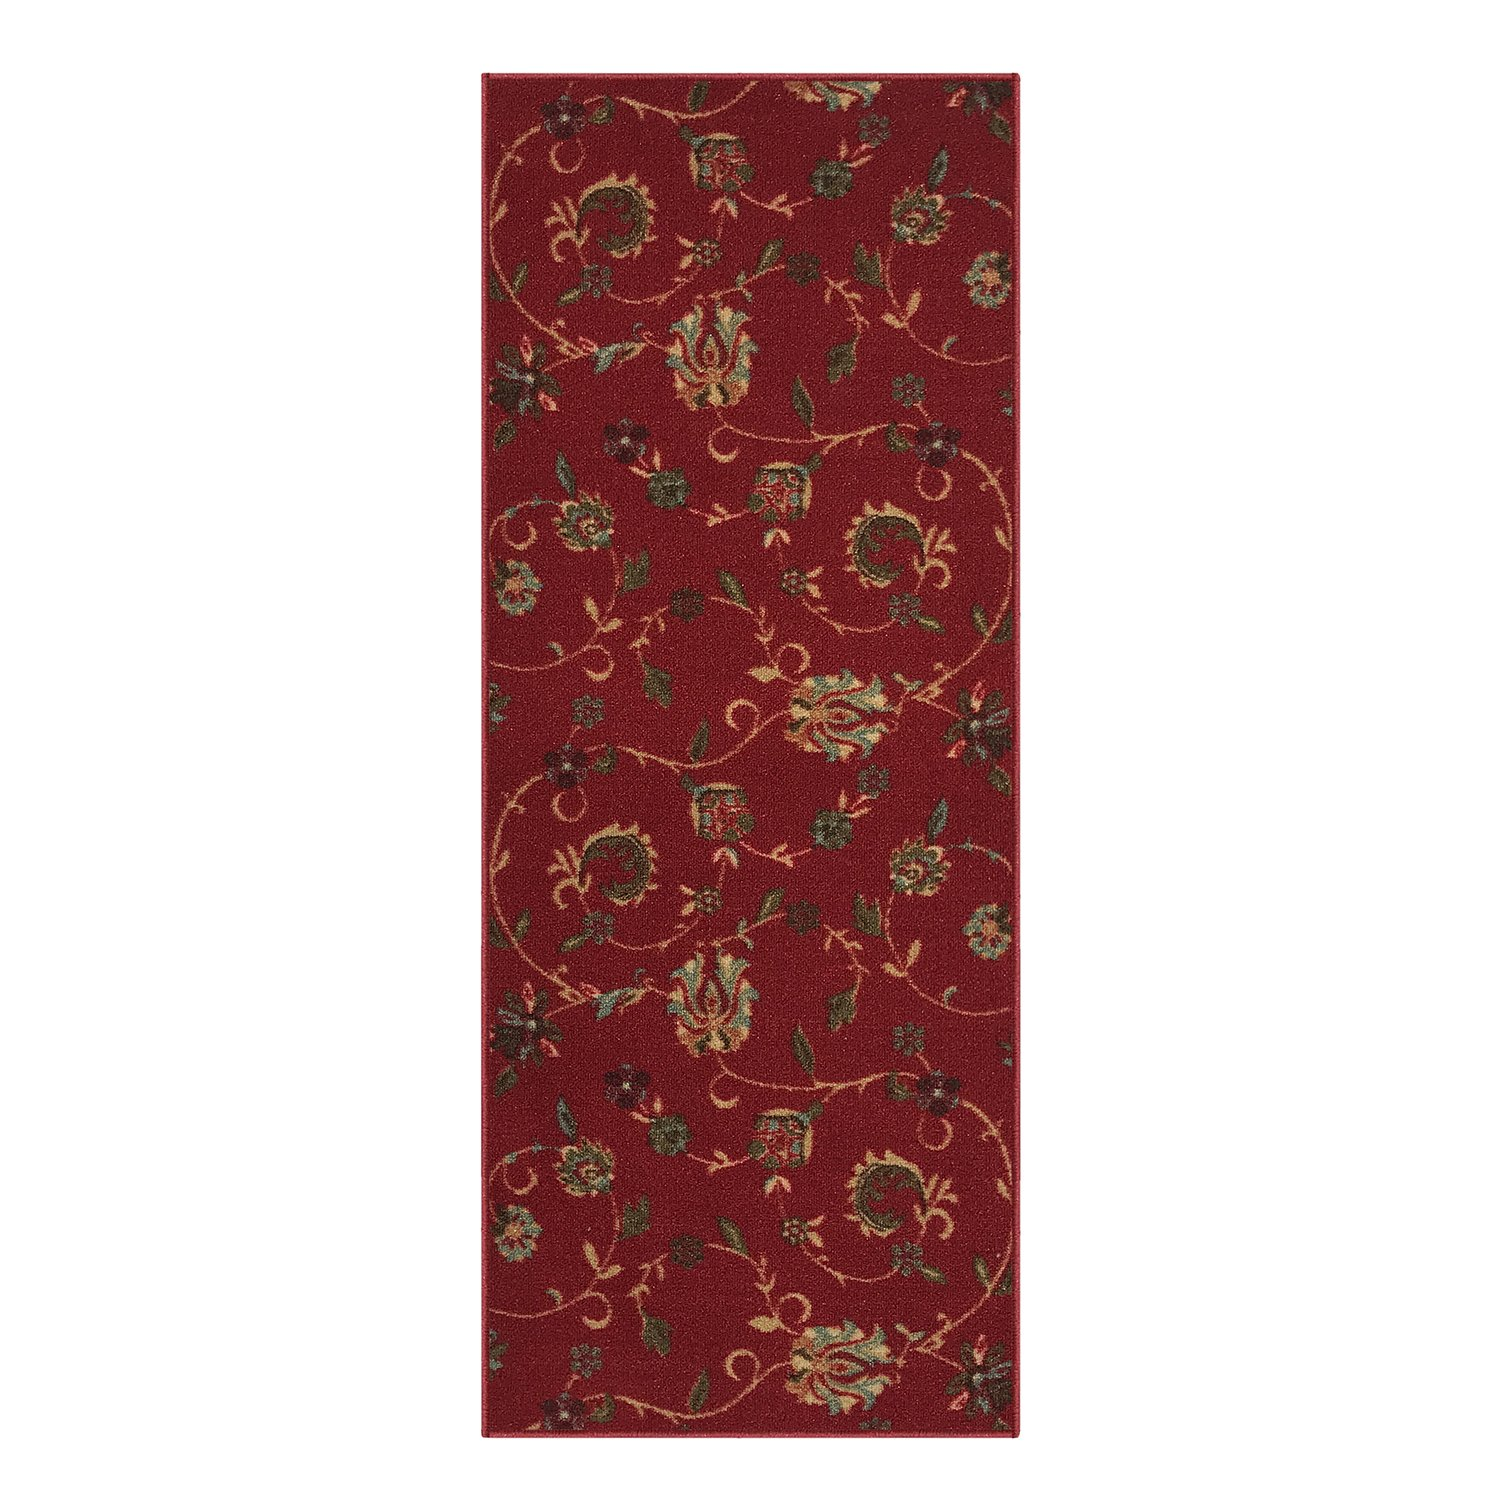 Kapaqua Custom Size RED Floral Rubber Backed Non-Slip Hallway Stair Runner Rug Carpet 31 inch Wide Choose Your Length 31in X 5ft